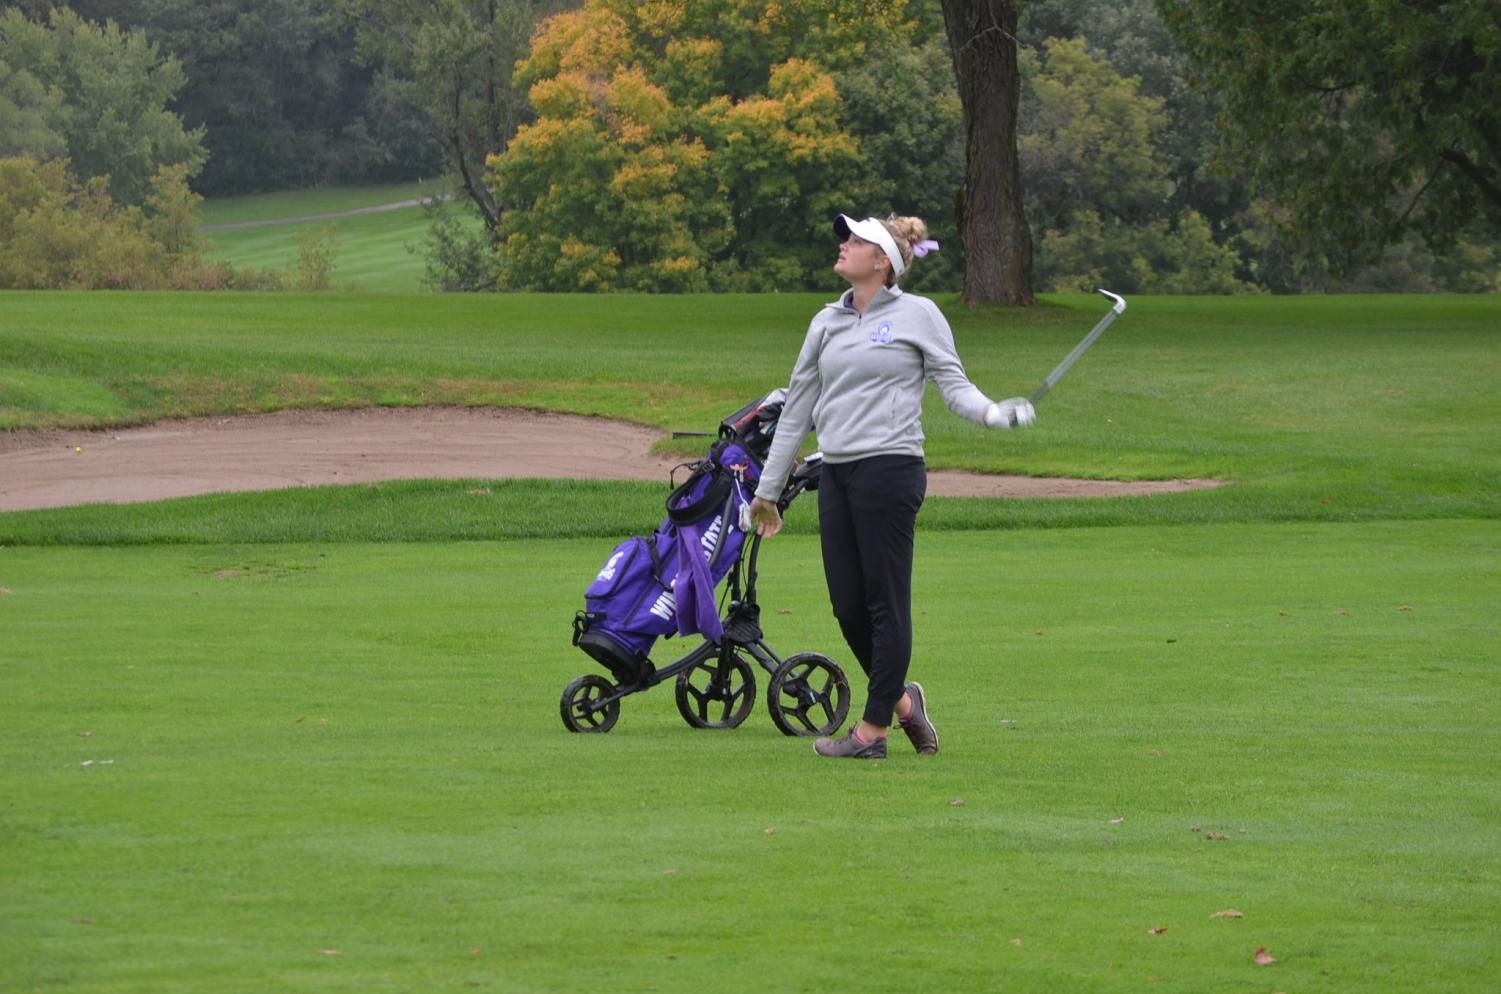 Sophomore Ally Loiselle watches for her ball during a duel against Viterbo University on Sunday, Sept. 29 at the Bridges Golf Course in Winona. The Warriors won with a team score of 321-334.